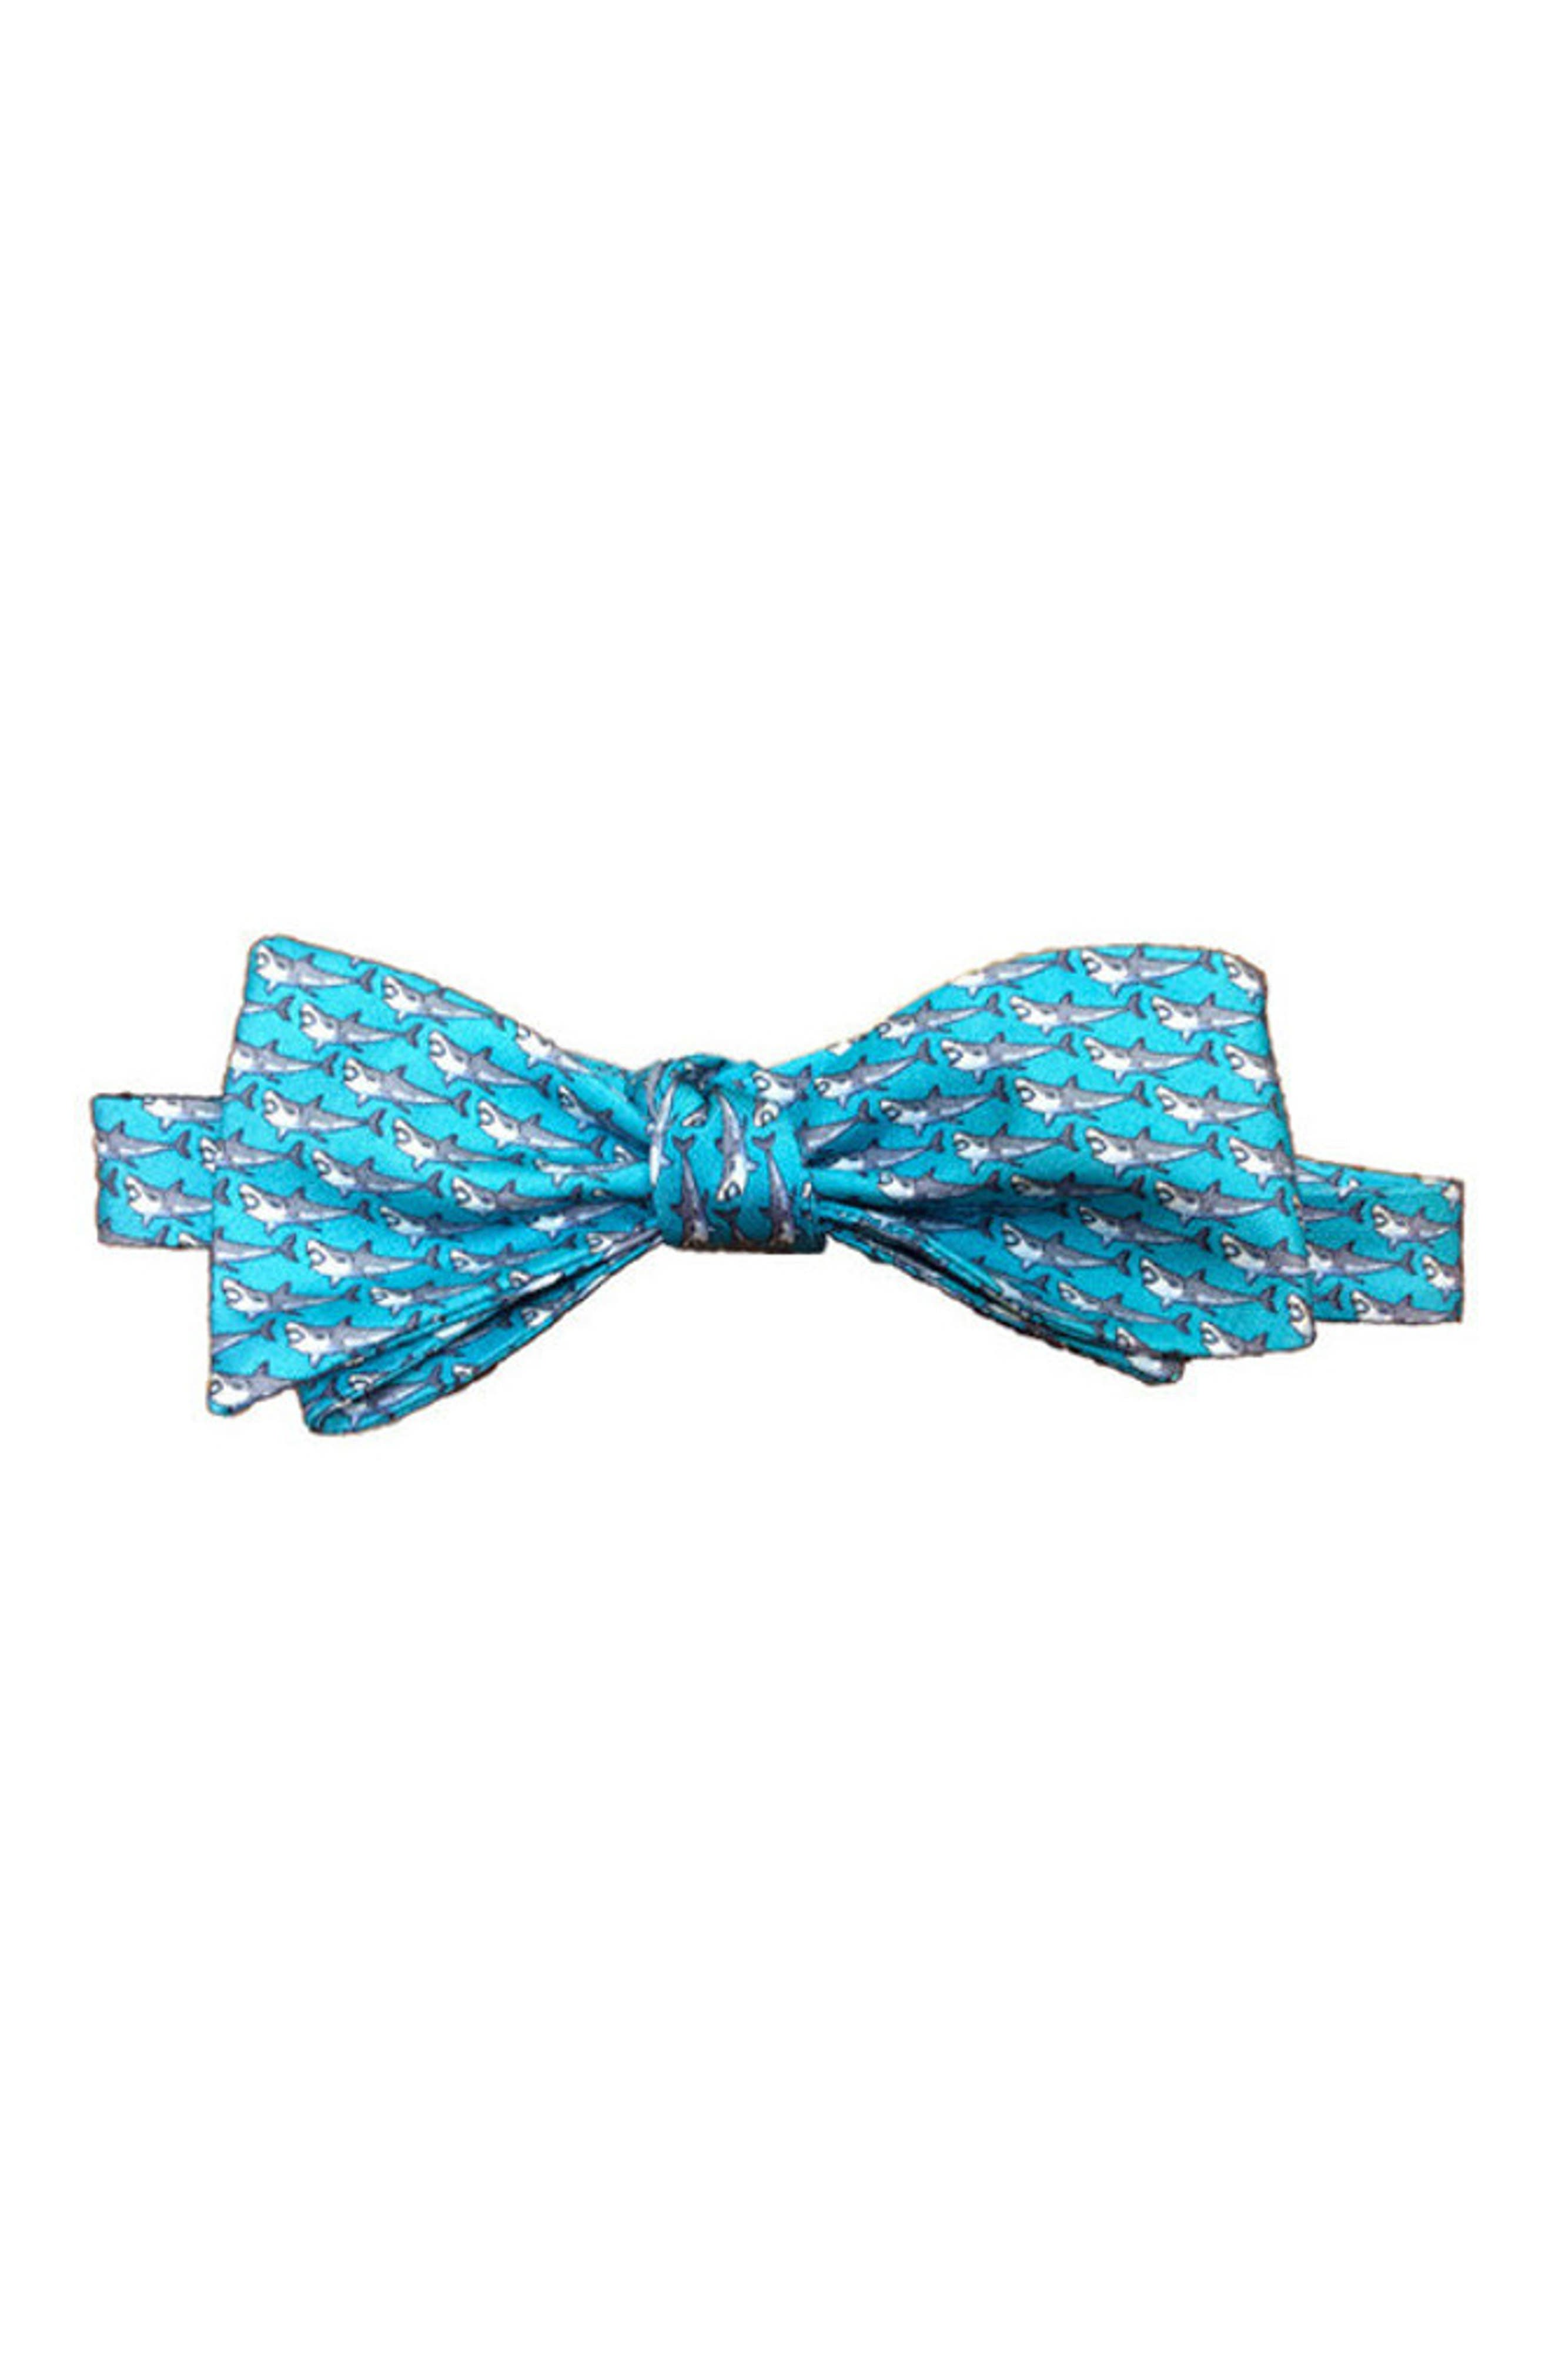 Shark Week Silk Bow Tie,                             Main thumbnail 1, color,                             420